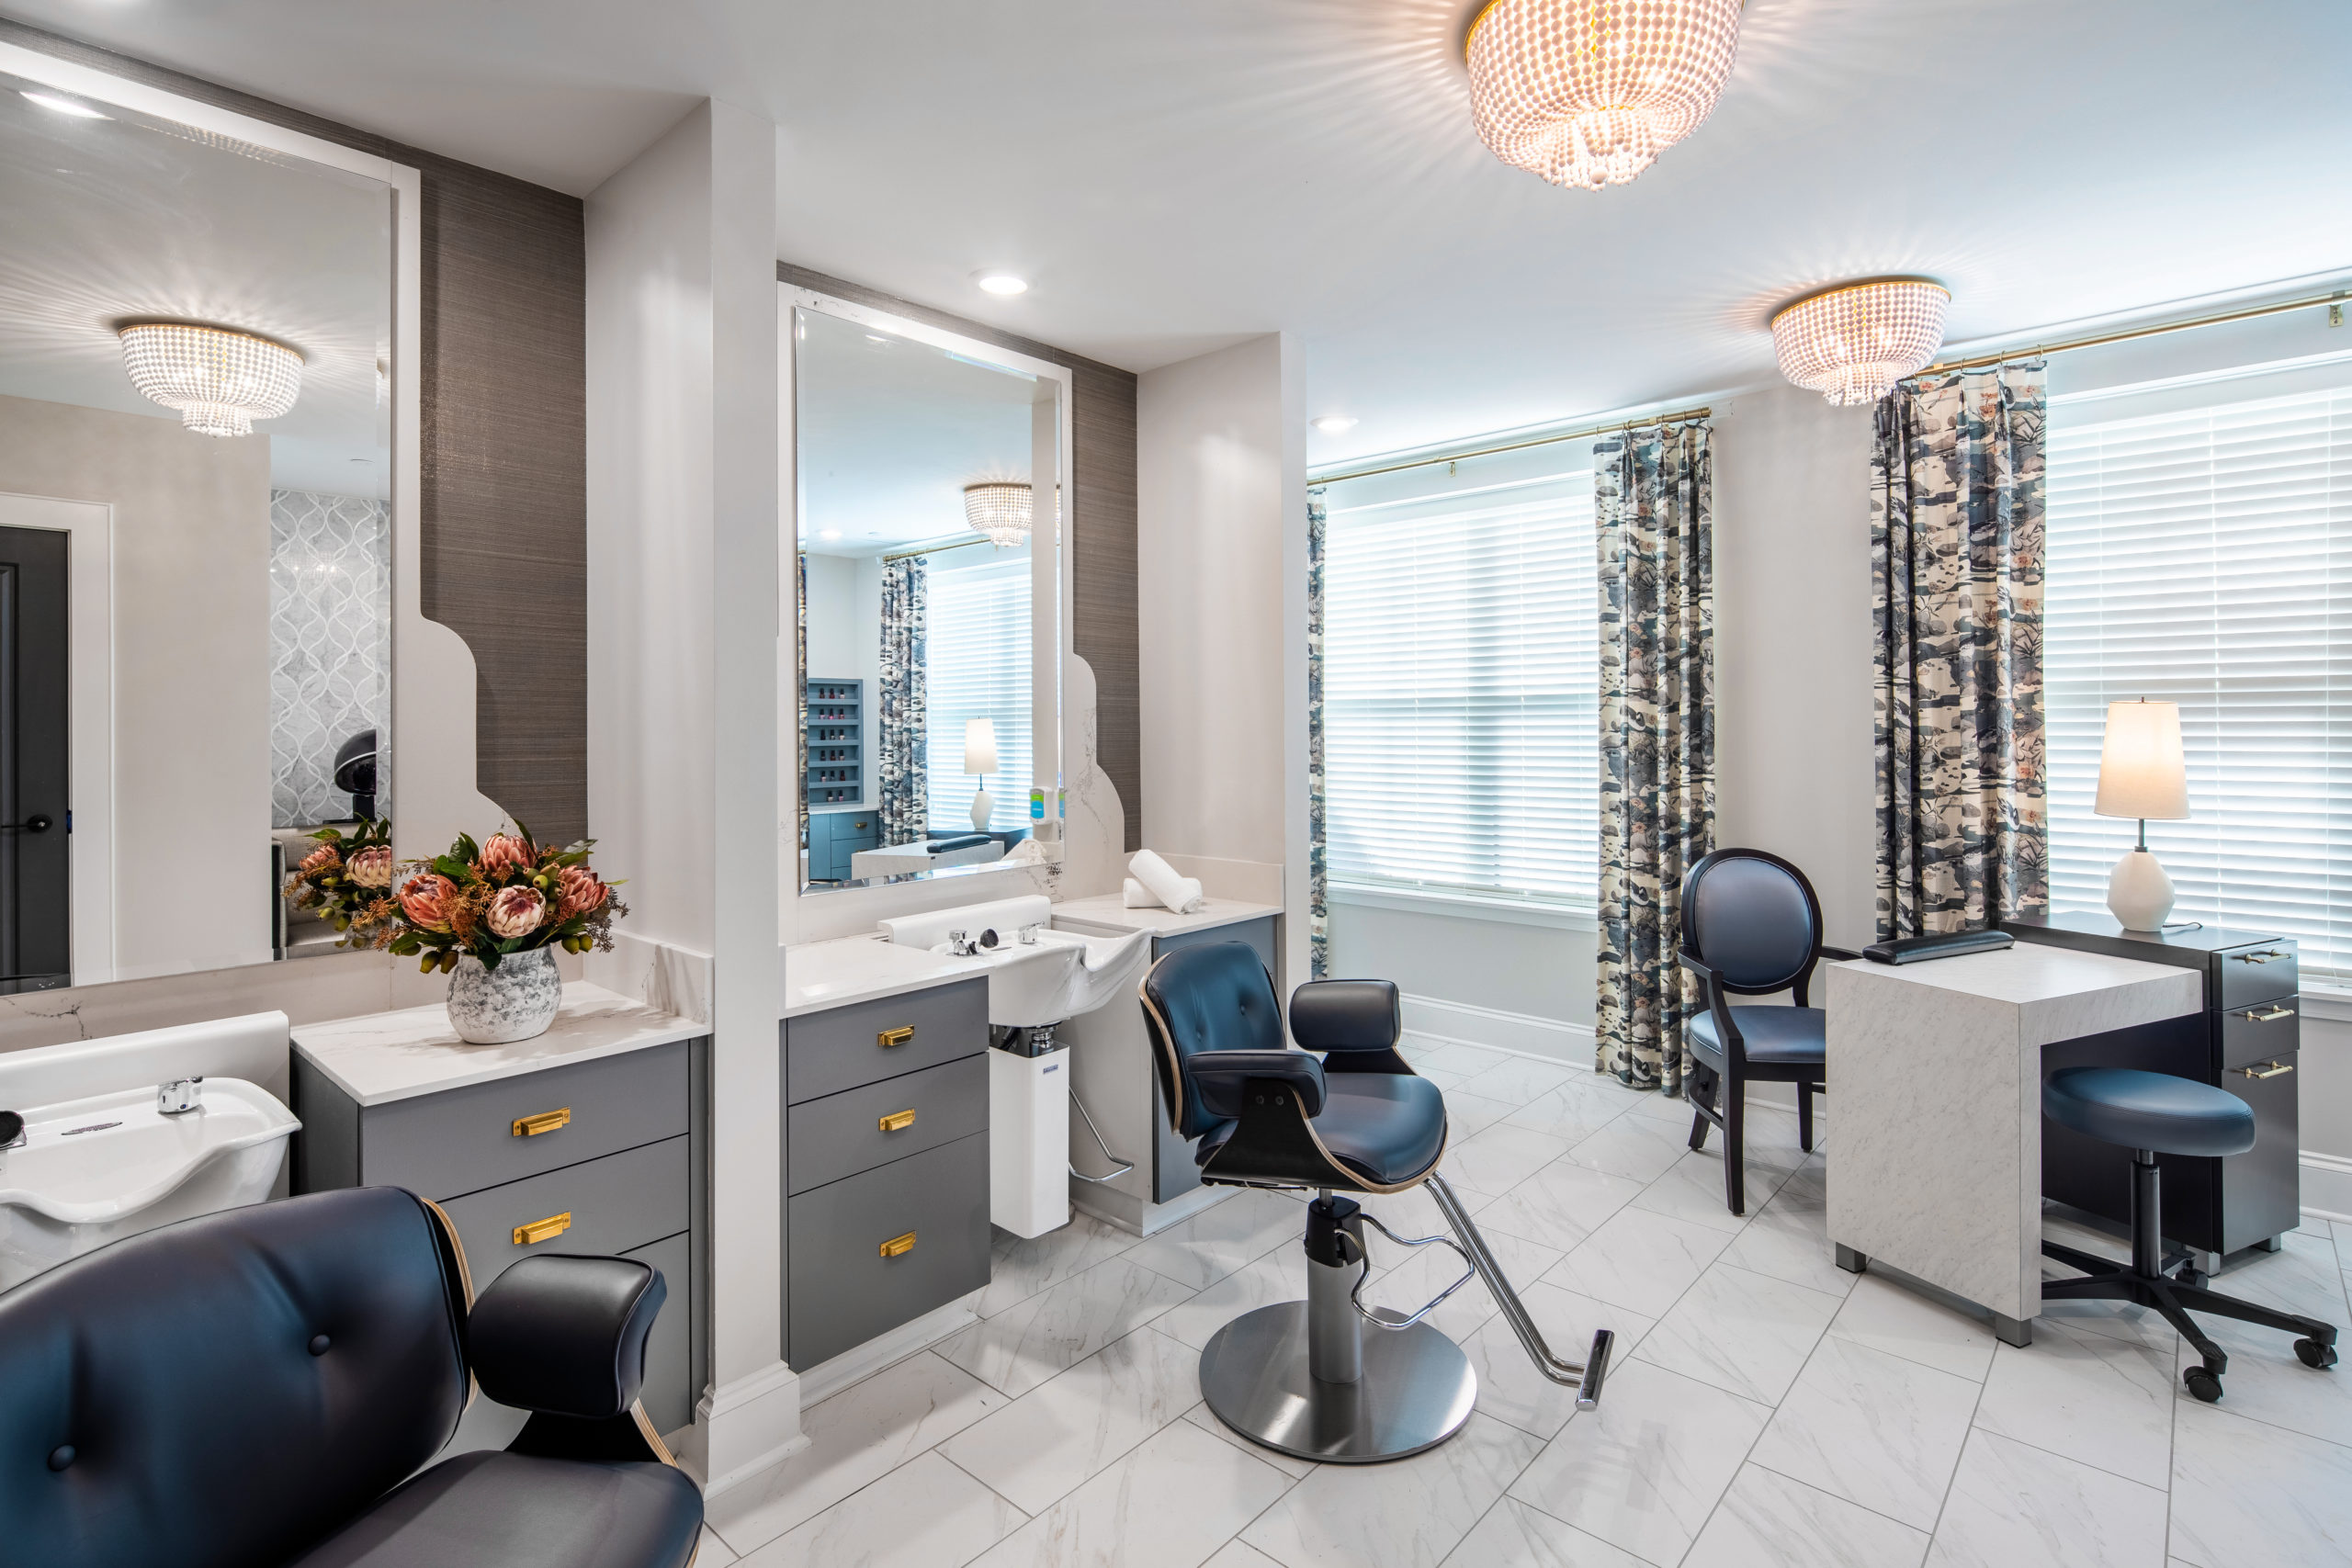 Two stylist stations with client chairs, white sinks and countertops, gray cabinets and mirrors with manicure table and chairs to right by windows in Longleaf salon